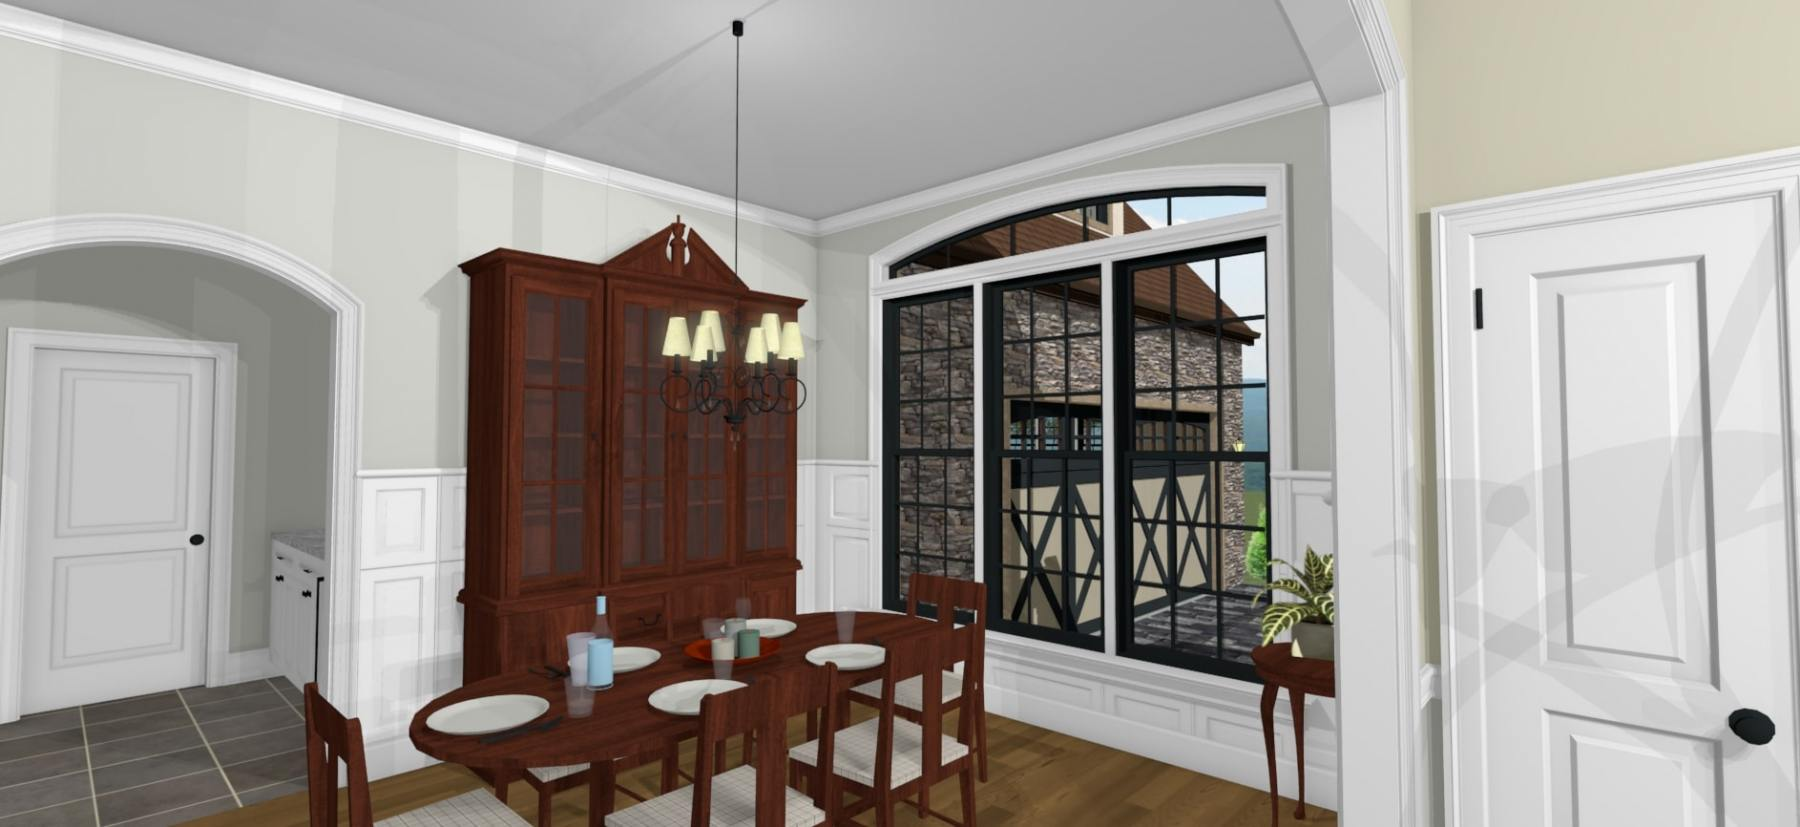 Dining area with large open windows and wall wainscoting.